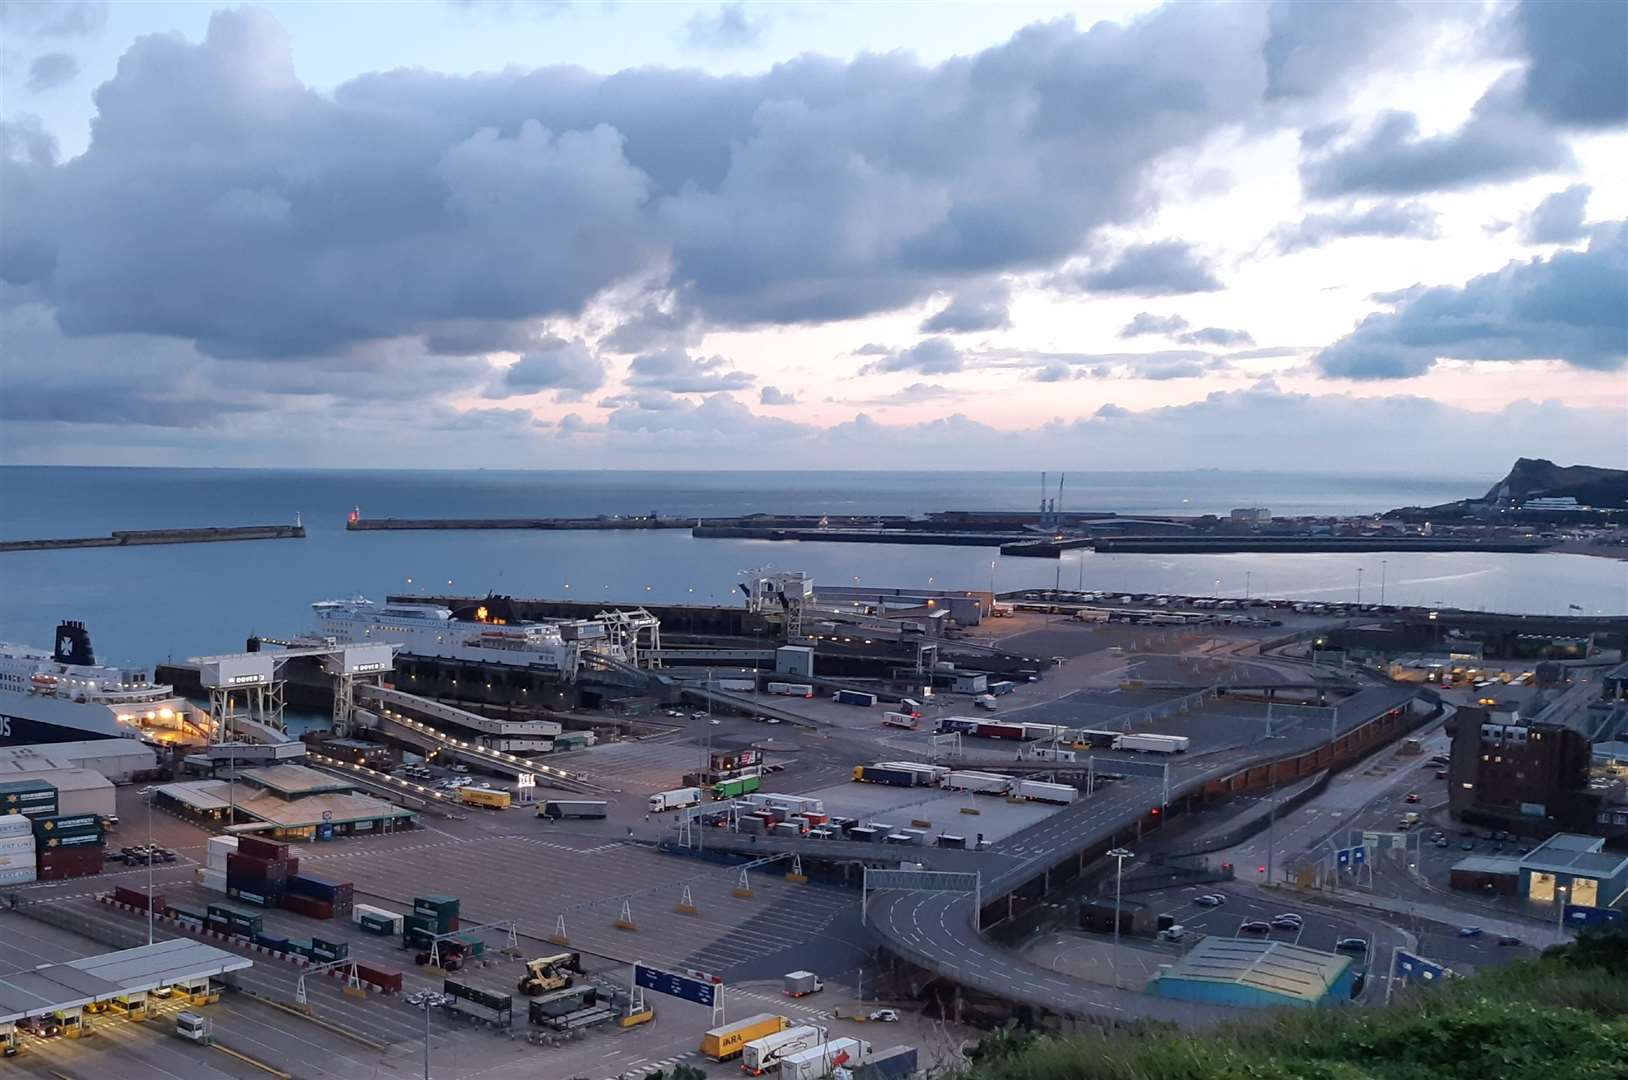 Dover Eastern Docks. The port authority says the Brexit delays gives it more time to prepare (18124587)